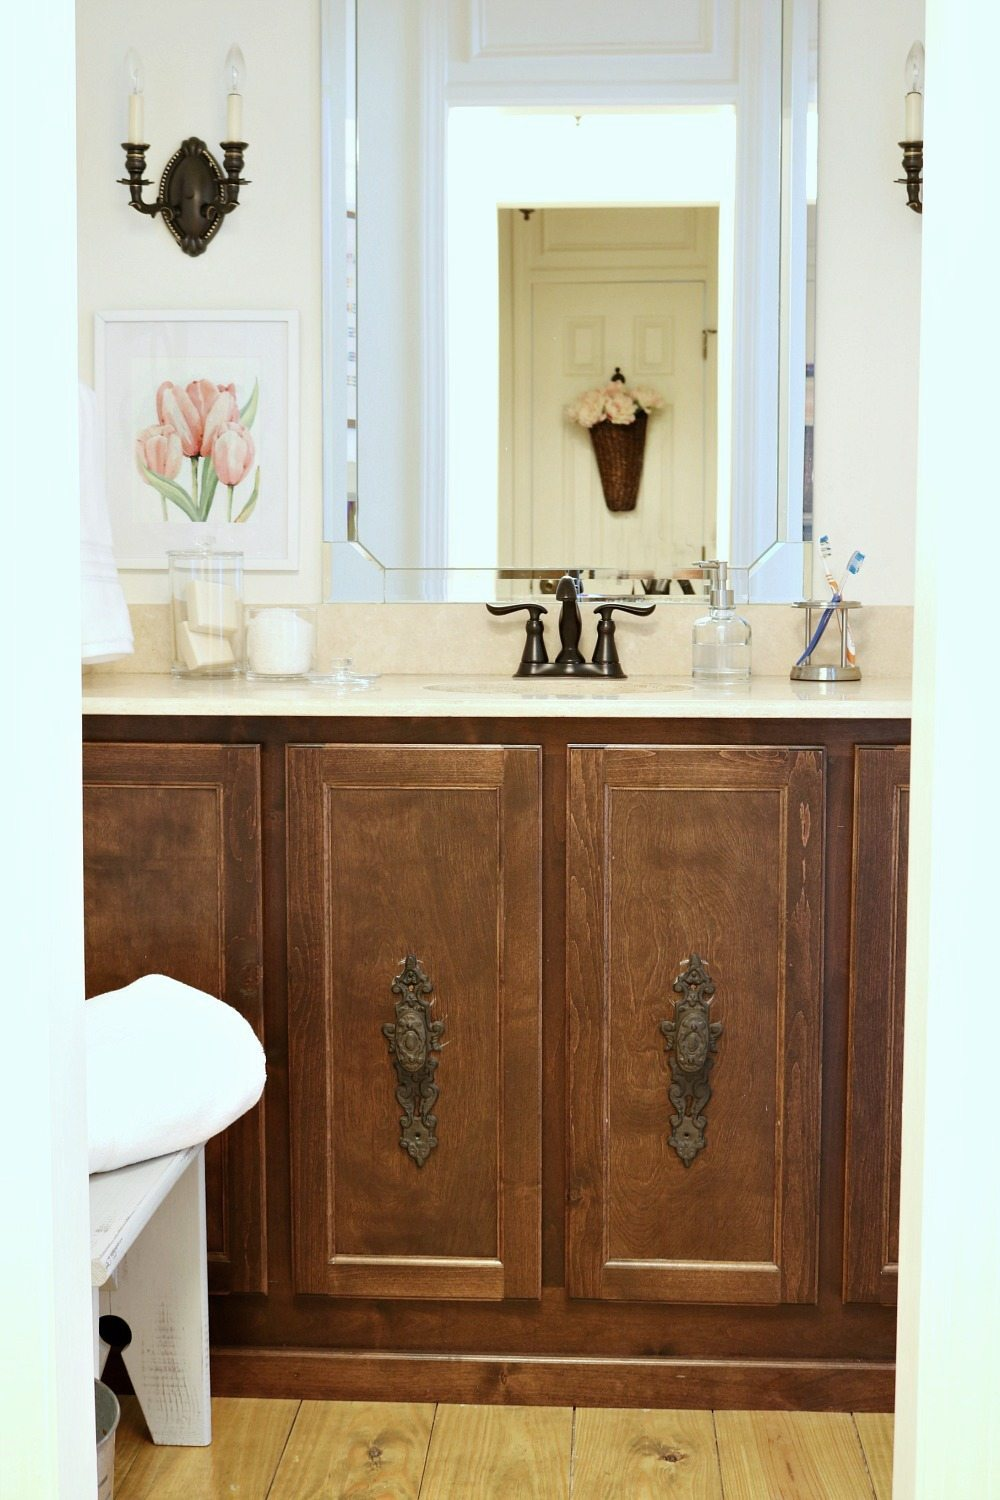 Mini Makeover for the guest bathroom when you're on a budget